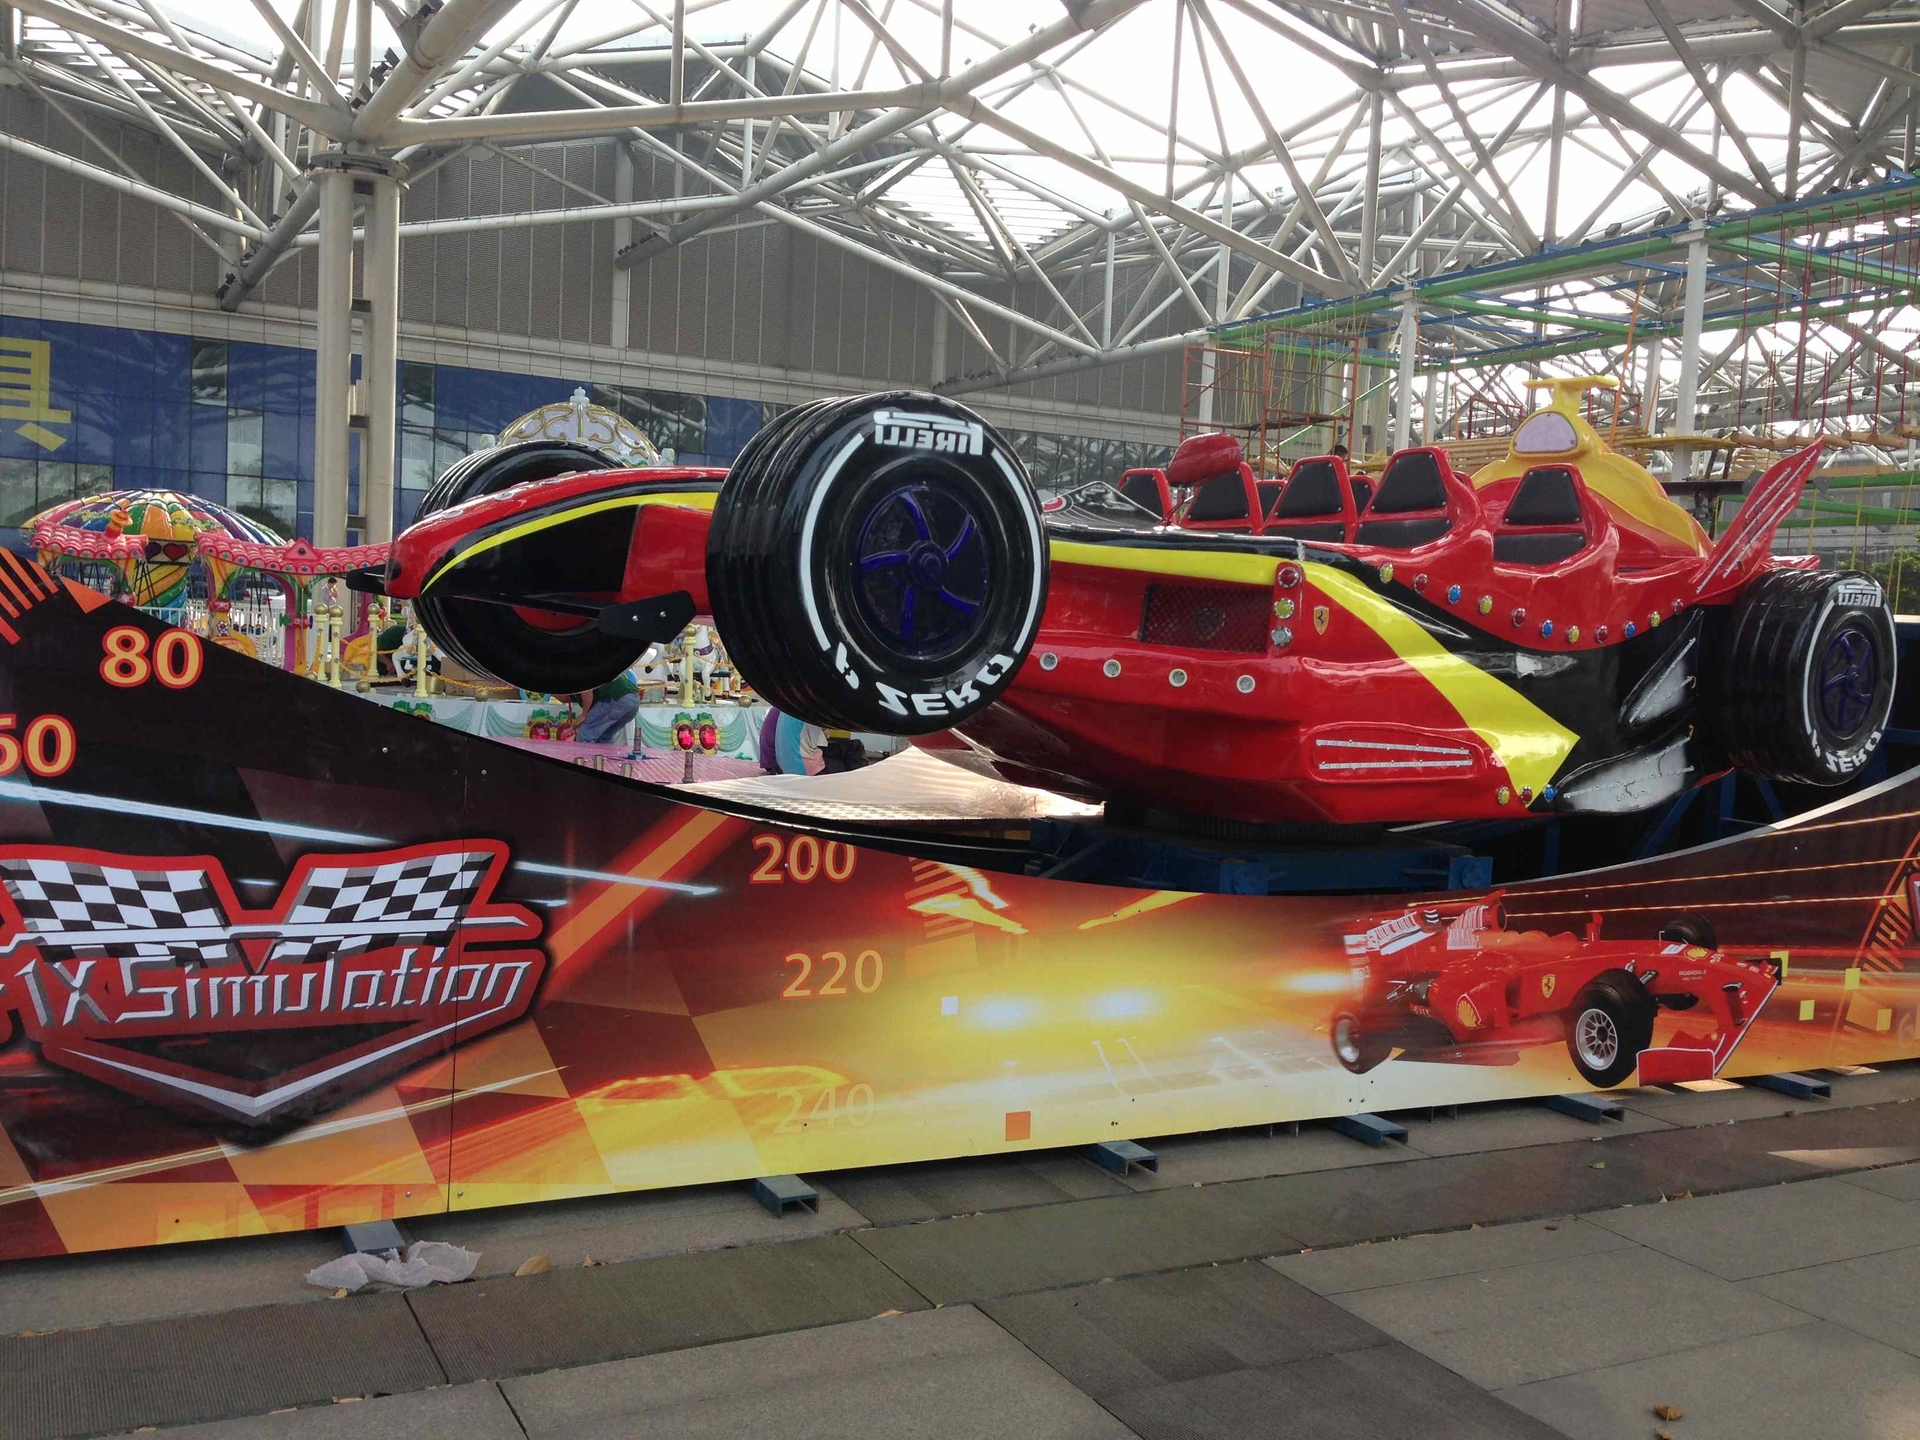 Racing Car X-F1 Single Wave Thrill Rides